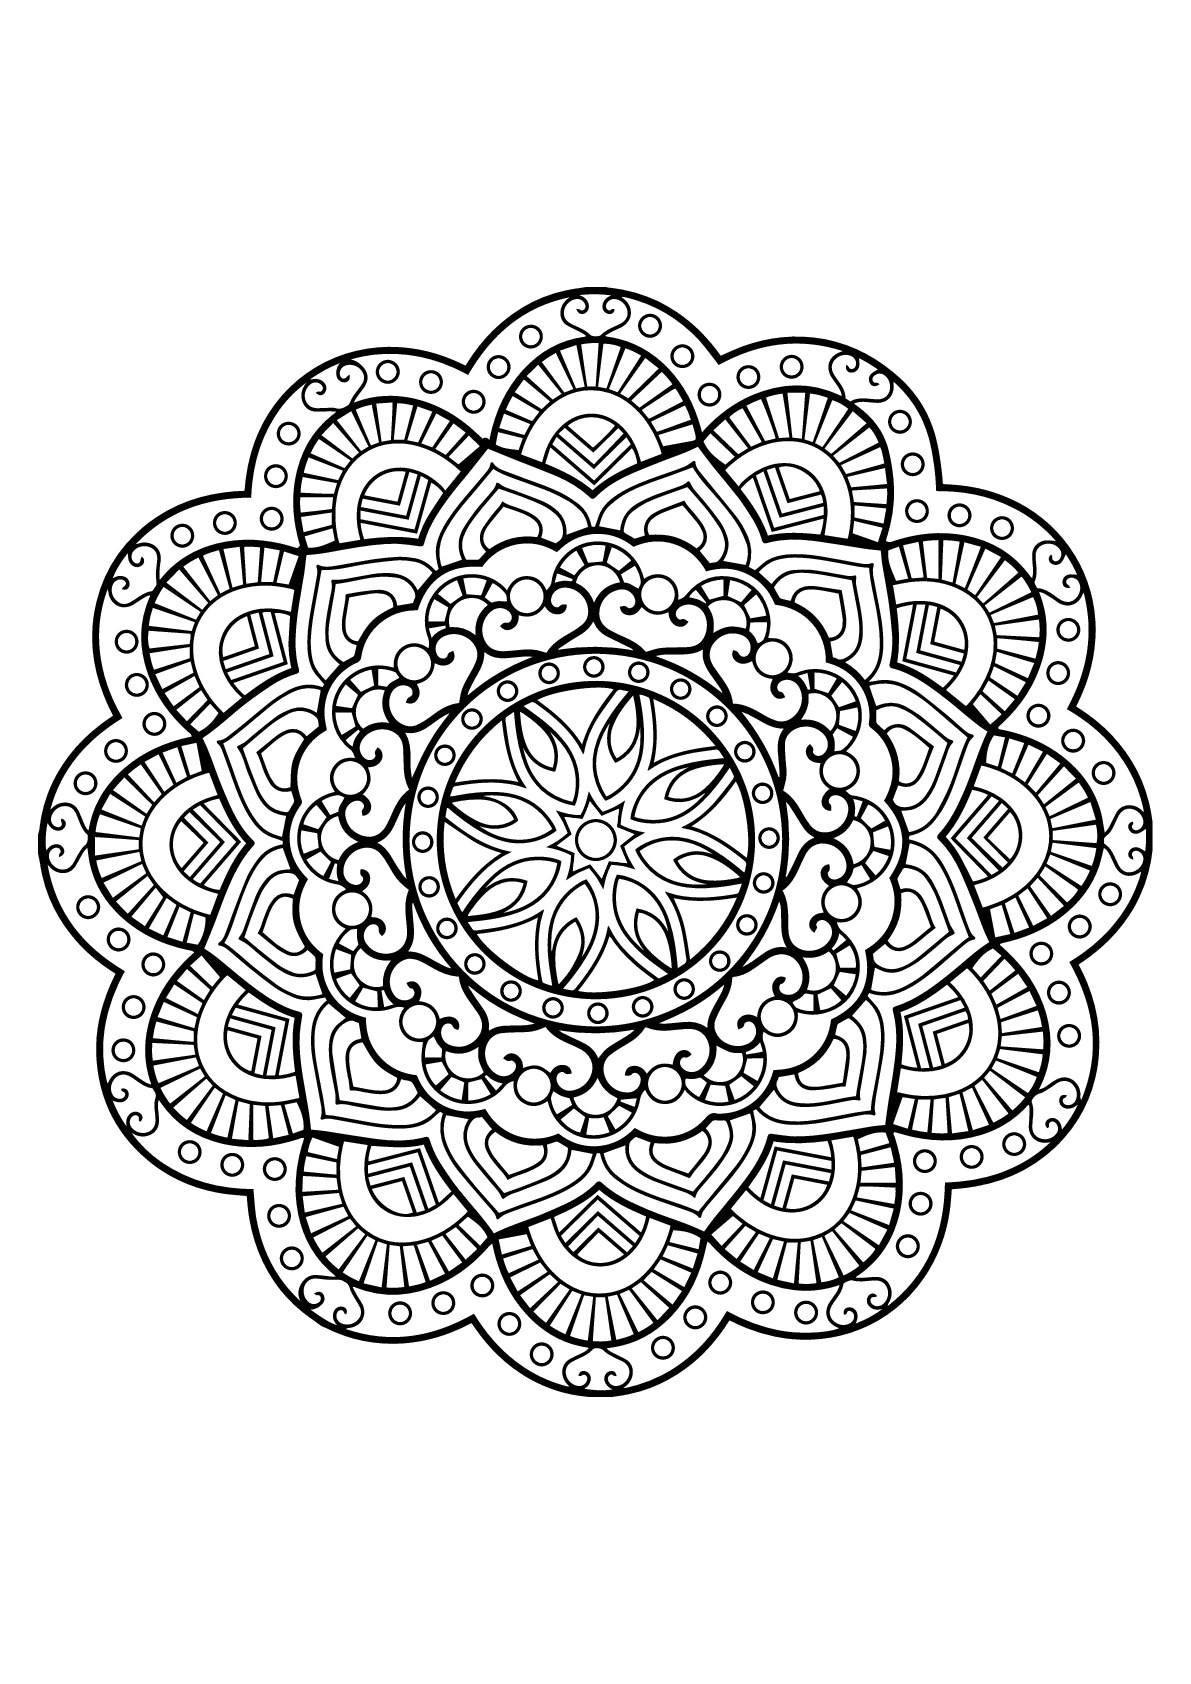 Mandala From Free Coloring Books For Adults 26